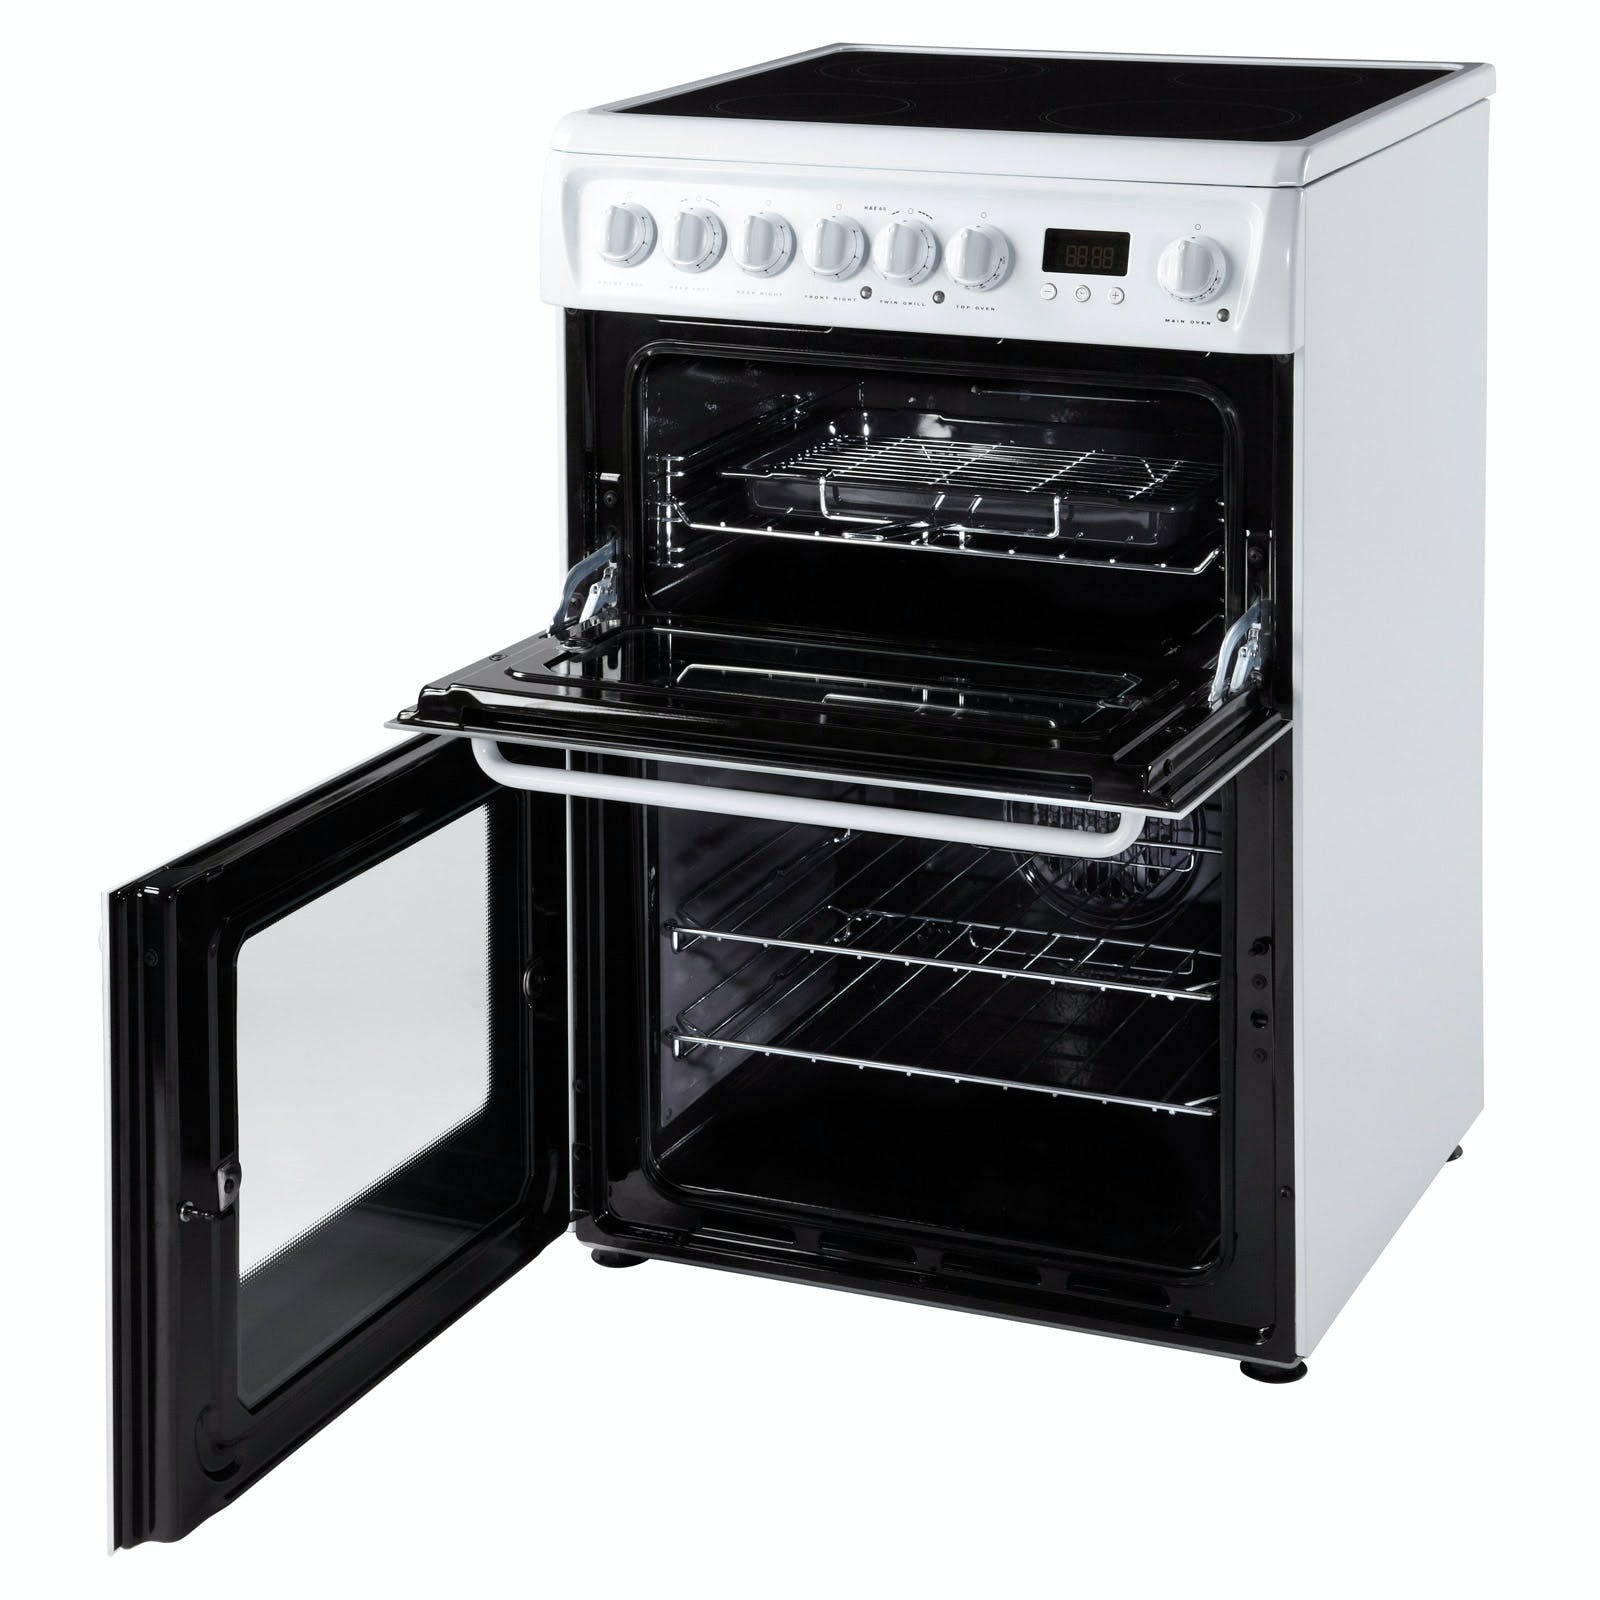 Hotpoint Hae60ps 60cm Electric Cooker In White Ceramic Hob Double Oven This Has A Multifunction Easyclean Enamel